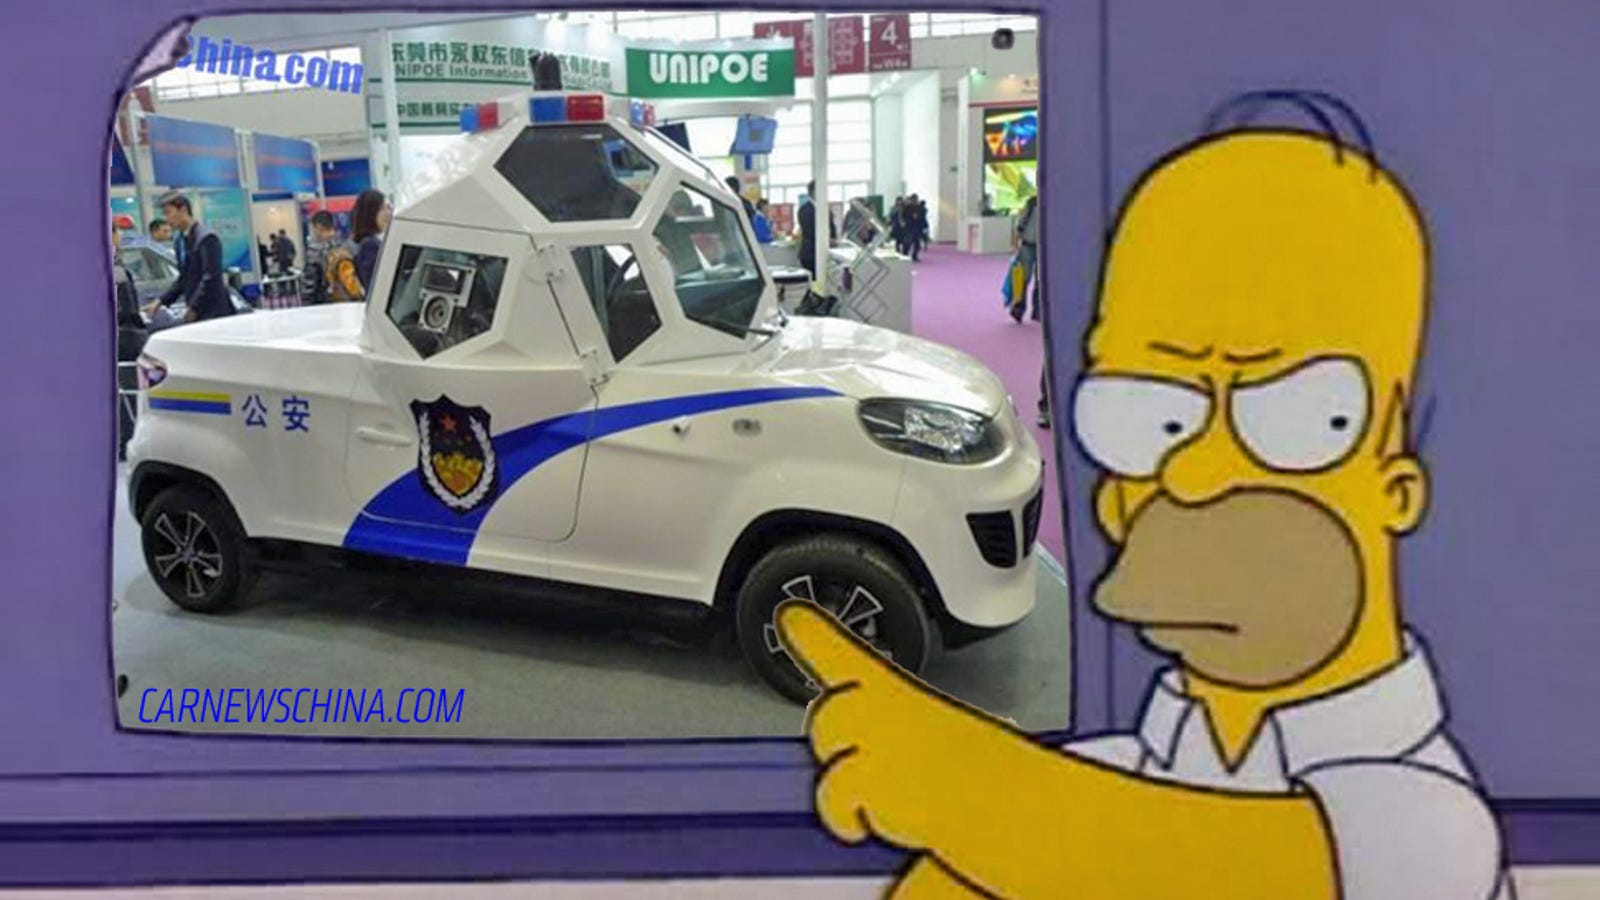 Homer Car: These Absurd Chinese Cop Cars Look Like Homer Simpson's